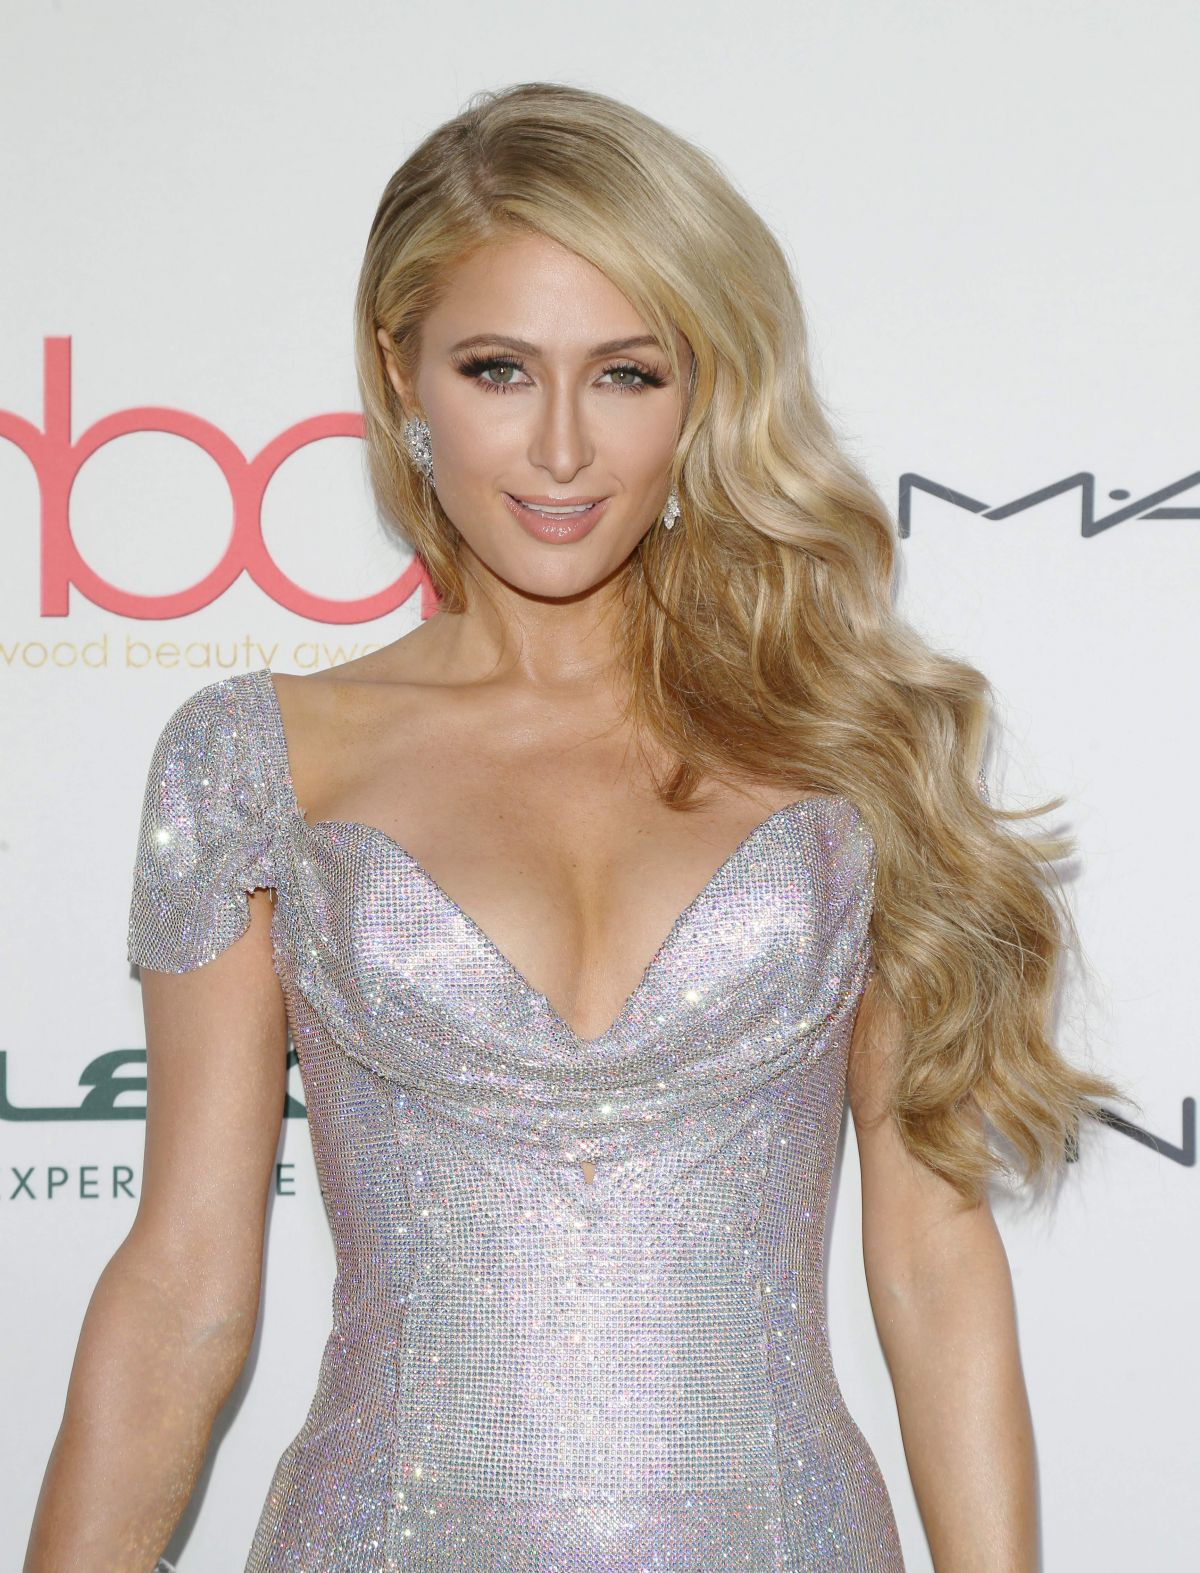 PARIS HILTON at 3rd Annual Hollywood Beauty Awards in Los Angeles 02 ... Paris Hilton